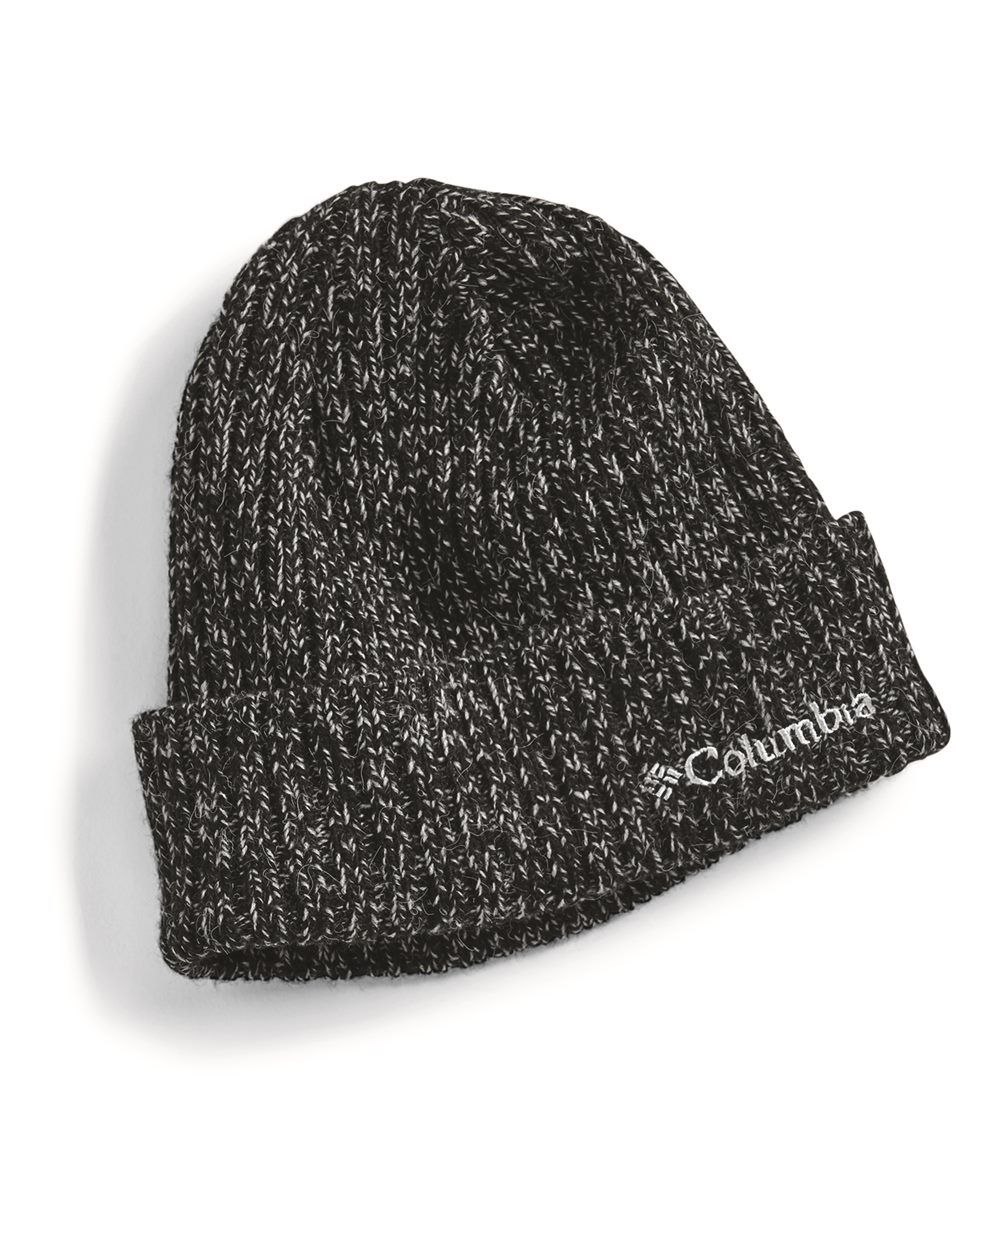 70483754818 Stay warm and stylish at cold weather with this Columbia 146409 Columbia  Watch Beanie. Available in 3 different colors